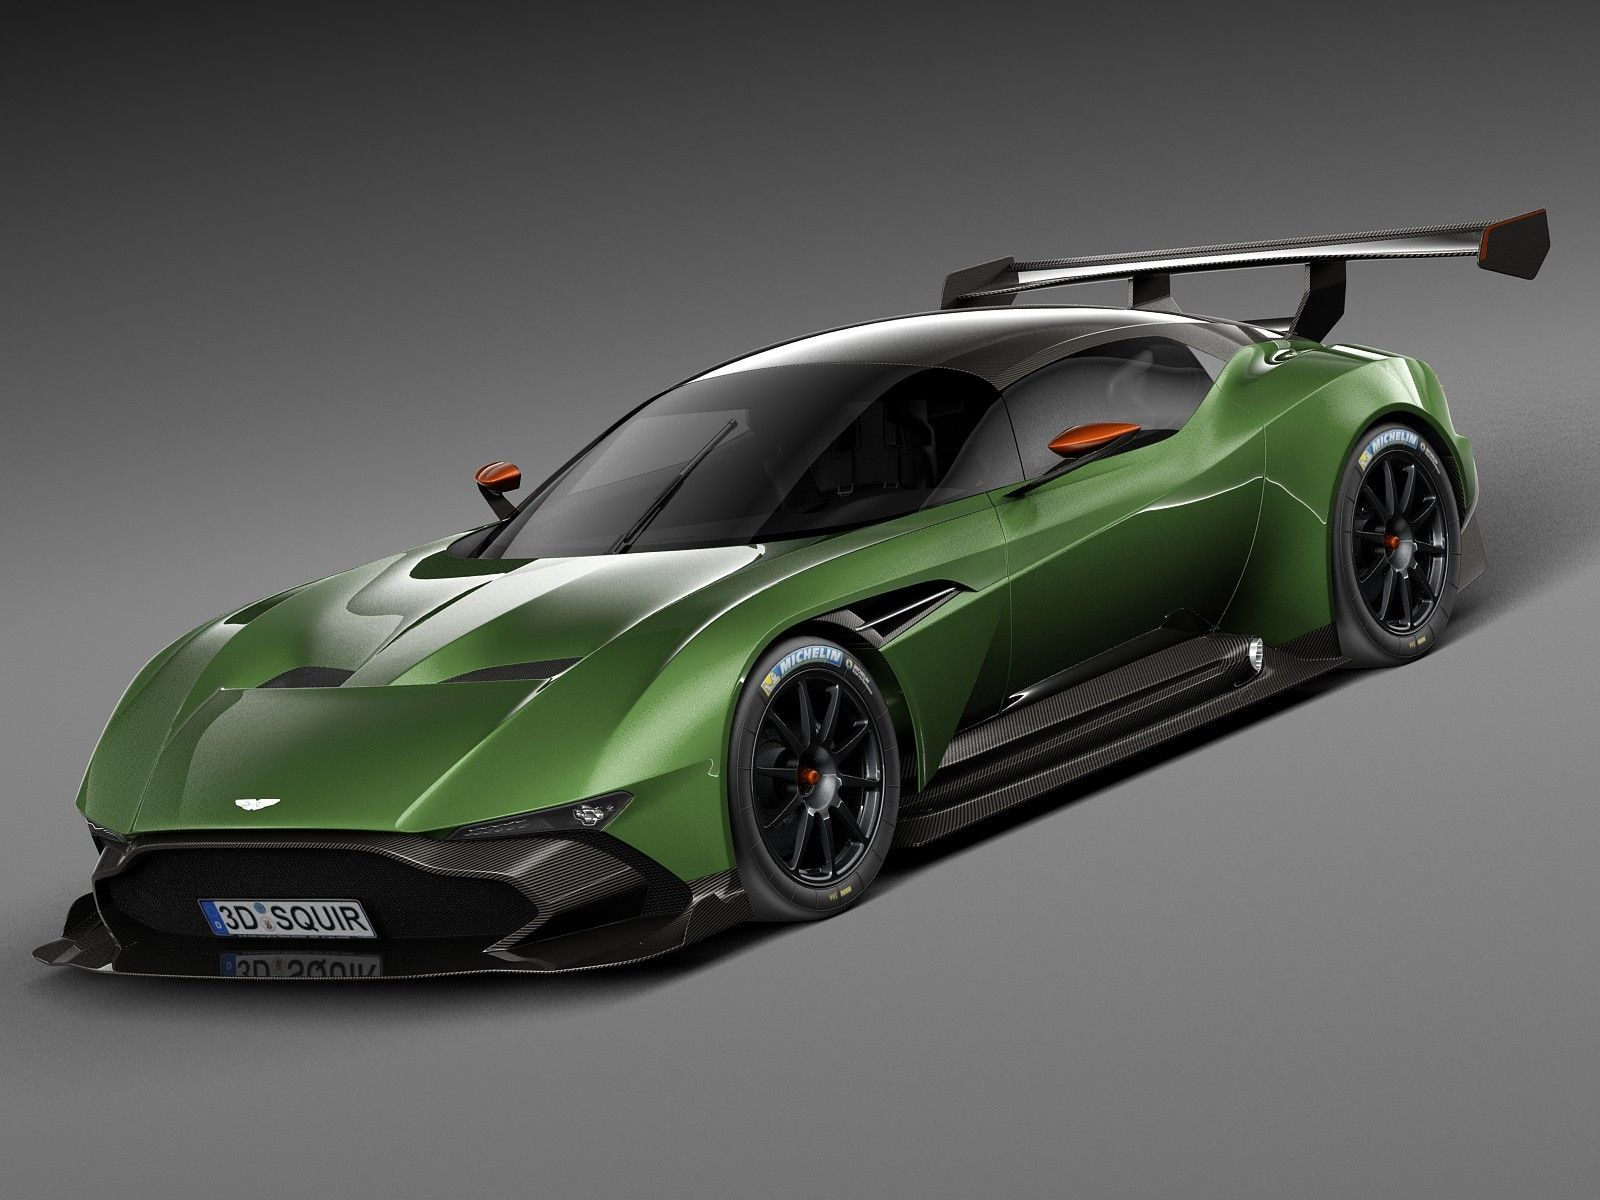 New Aston Martin Vulcan Wallpapers Wallpapers Themes